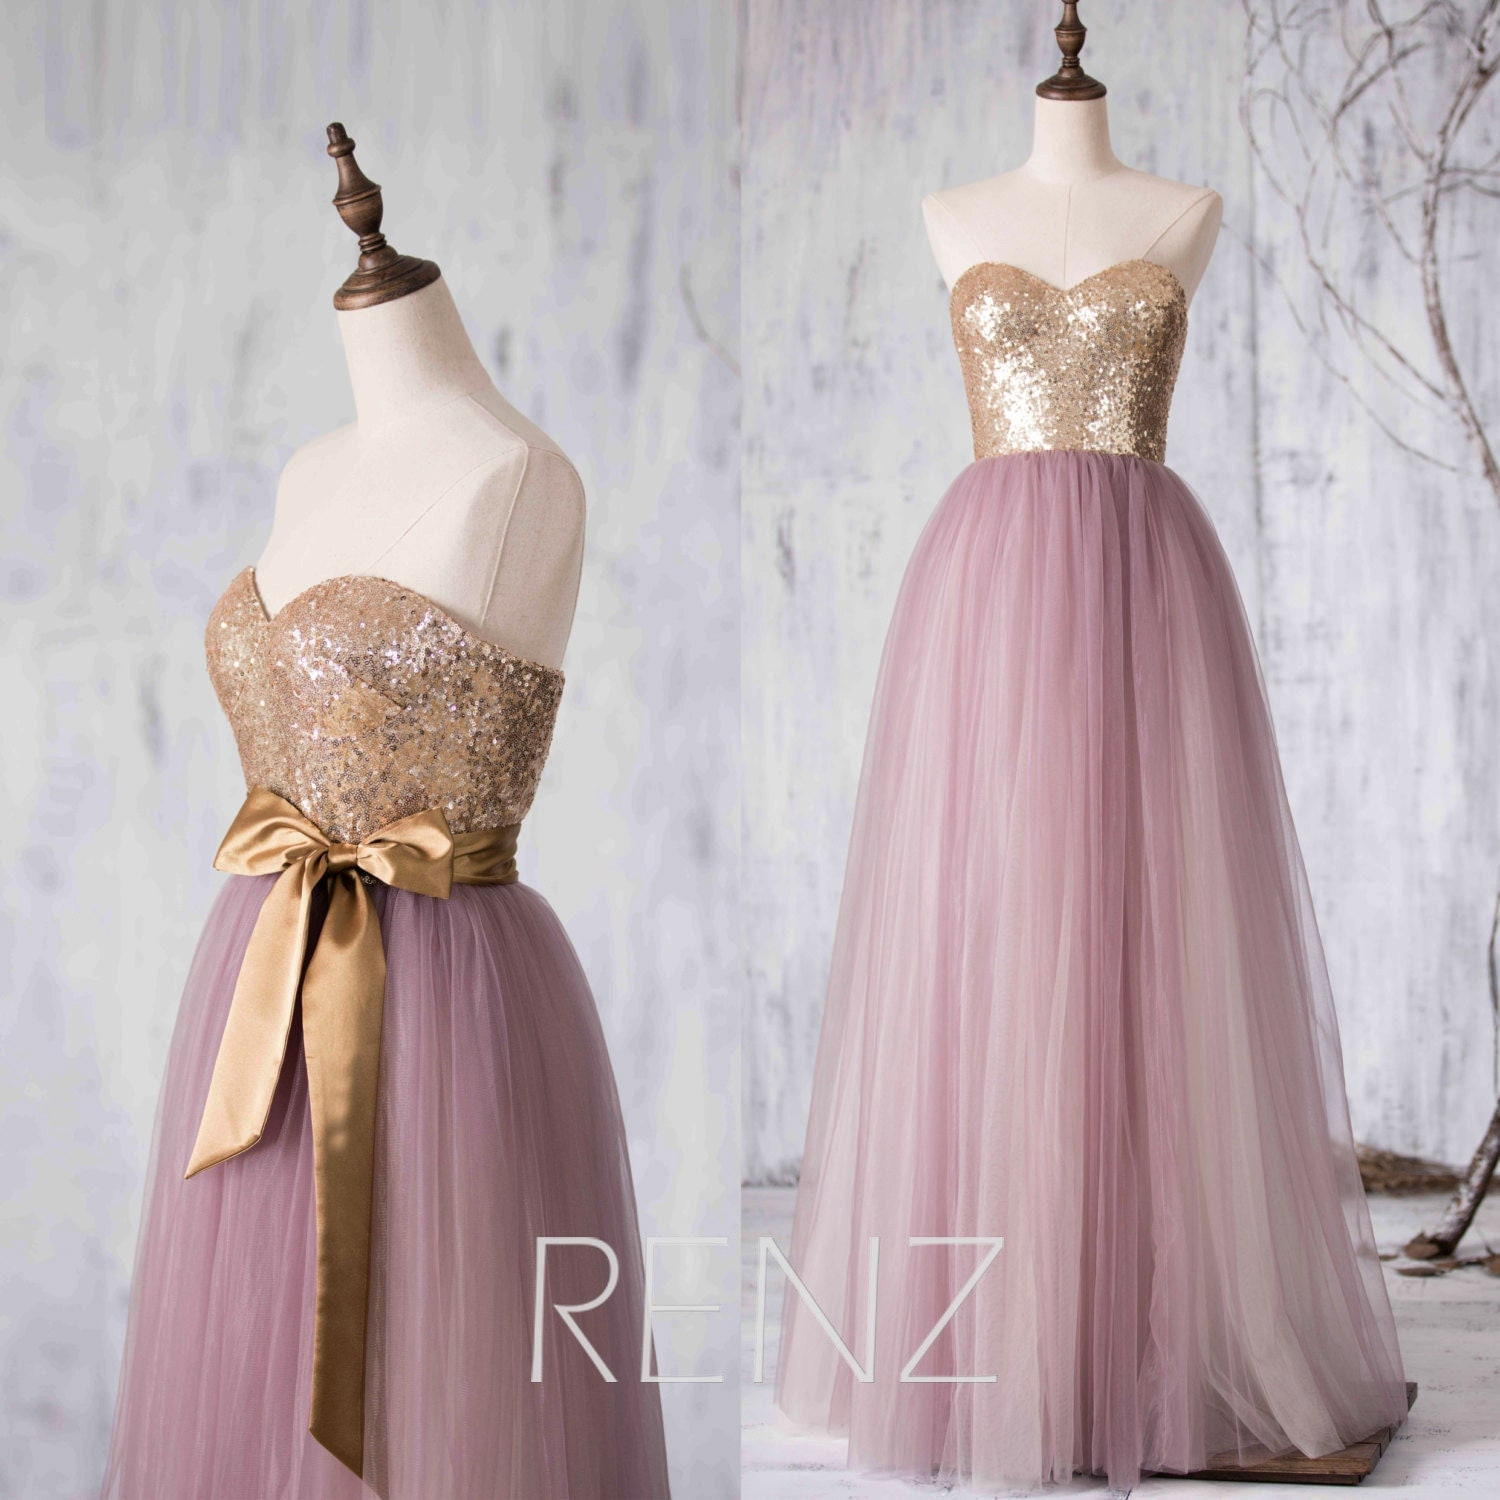 2016 Dusty Purple Mesh Bridesmaid dress Long Puffy by RenzRags